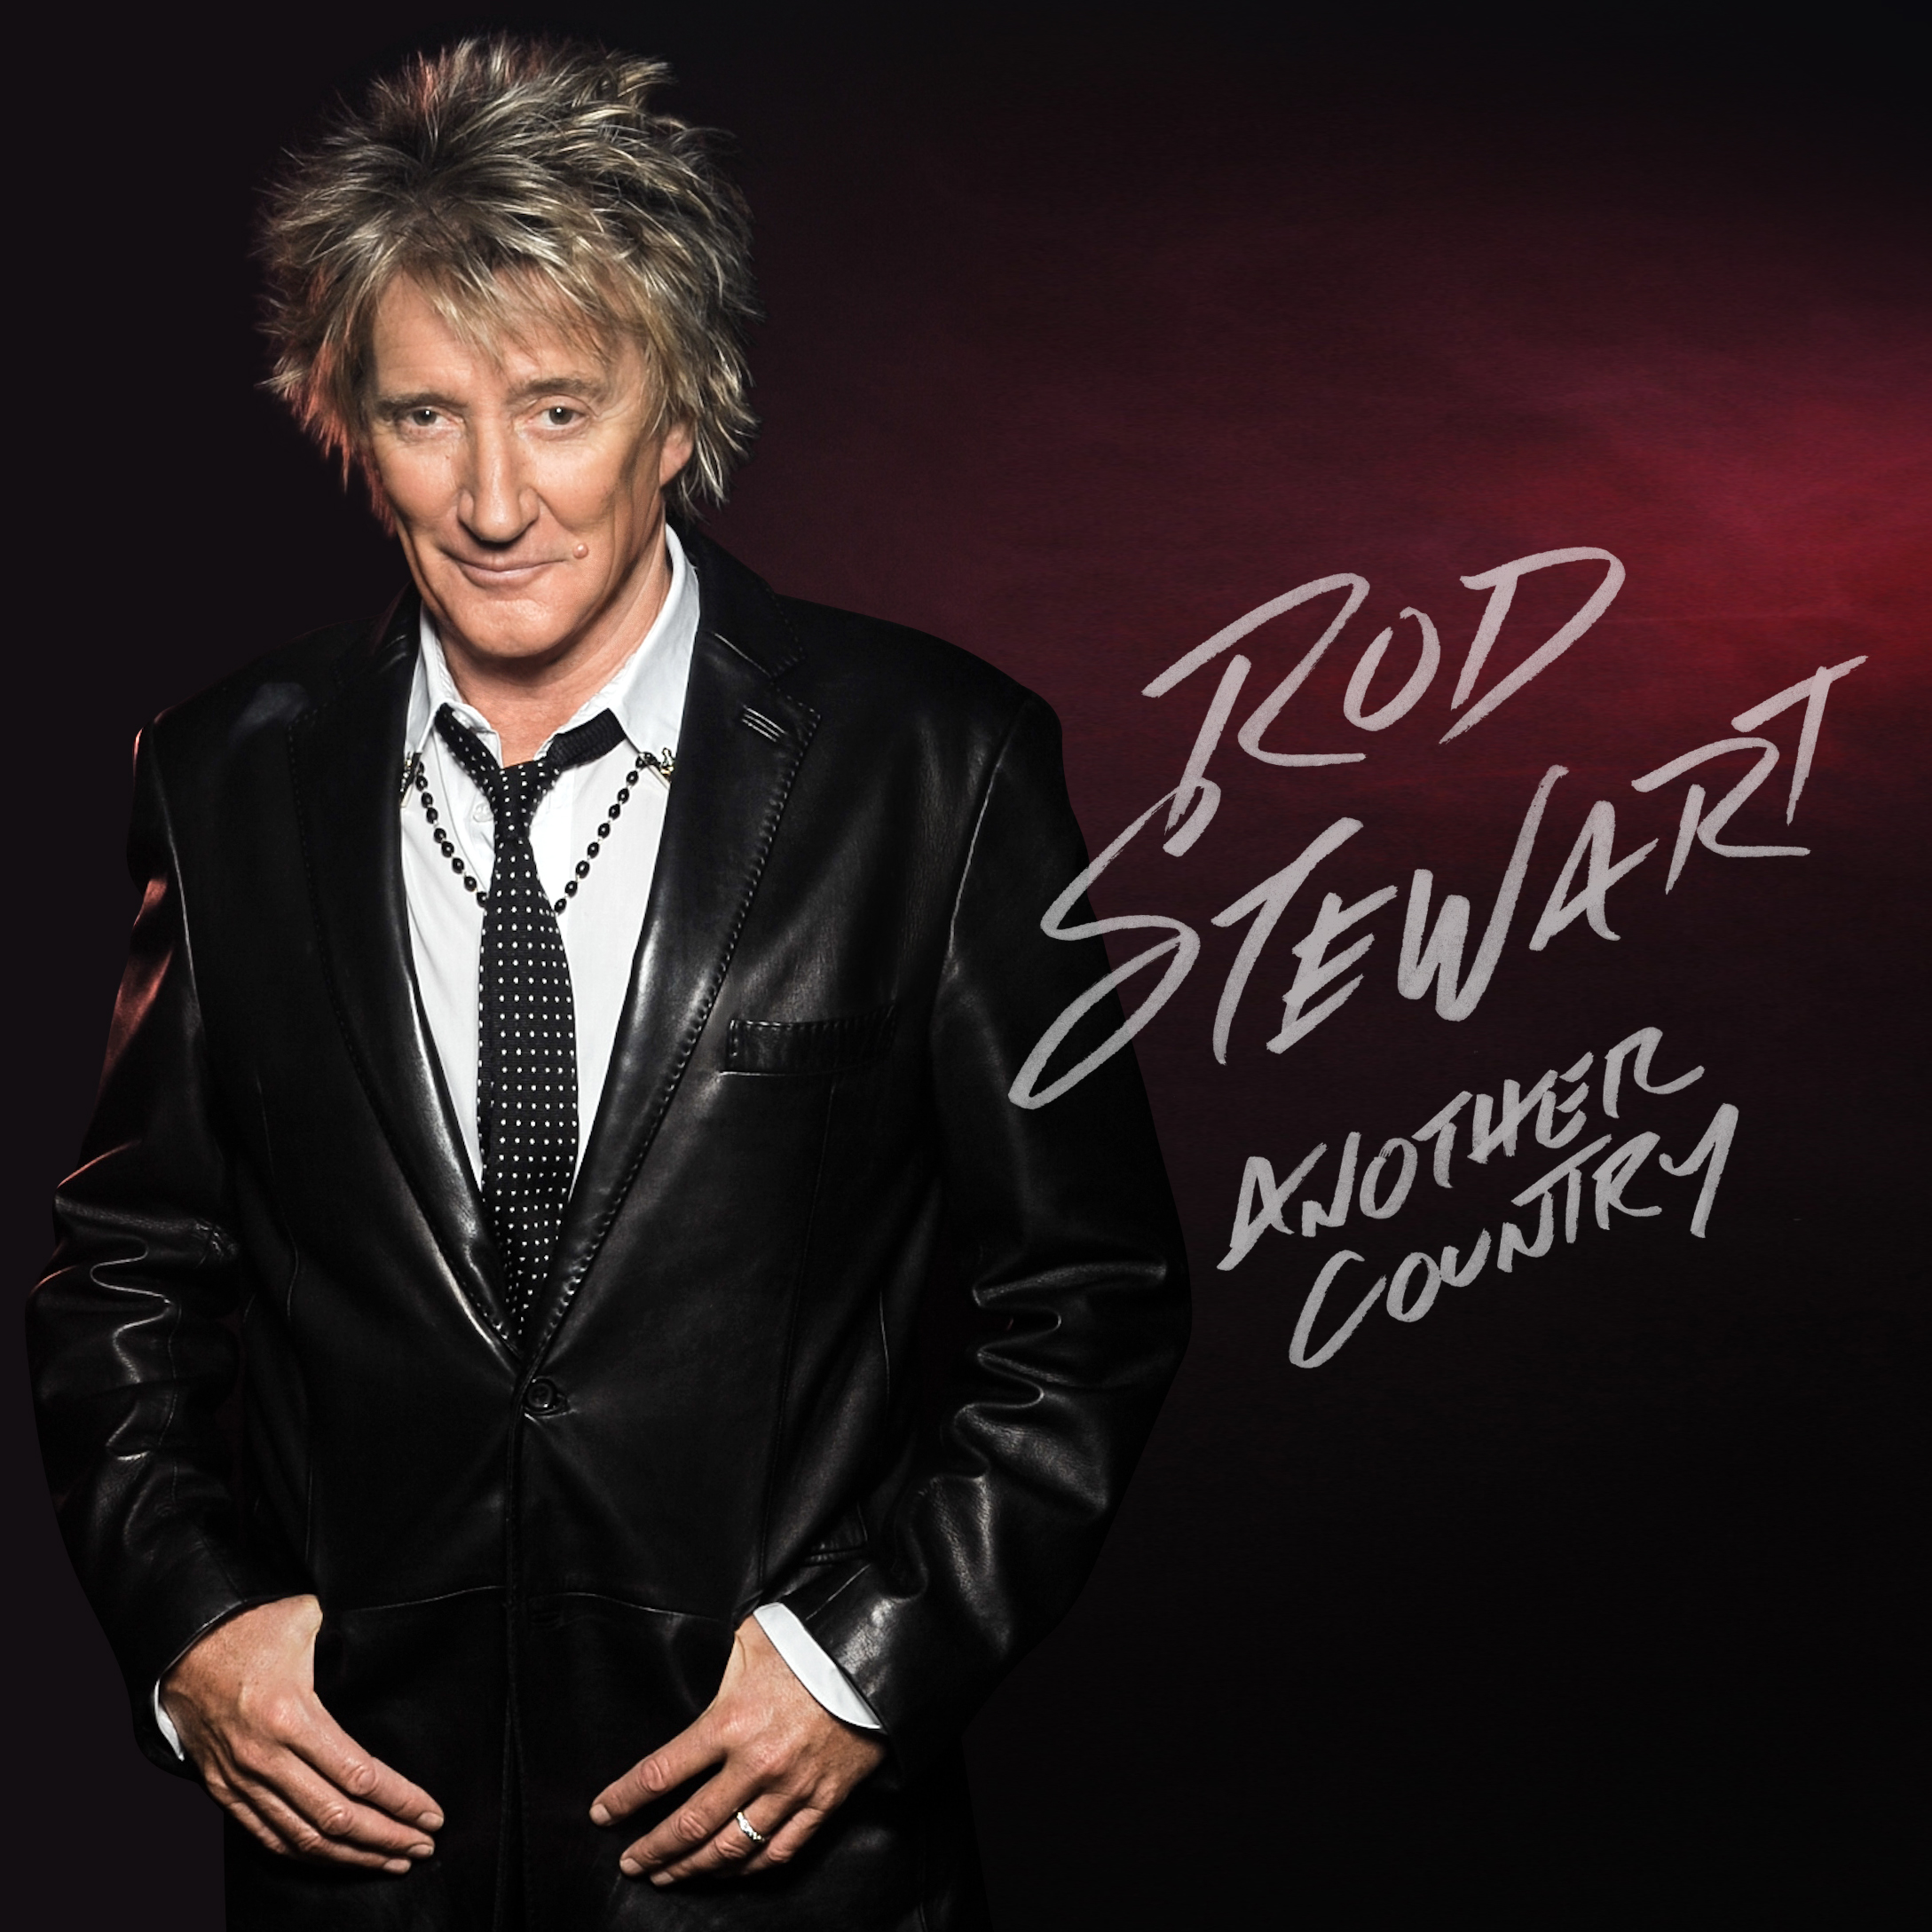 Rod-Stewart-Another-Country-International-Packshot